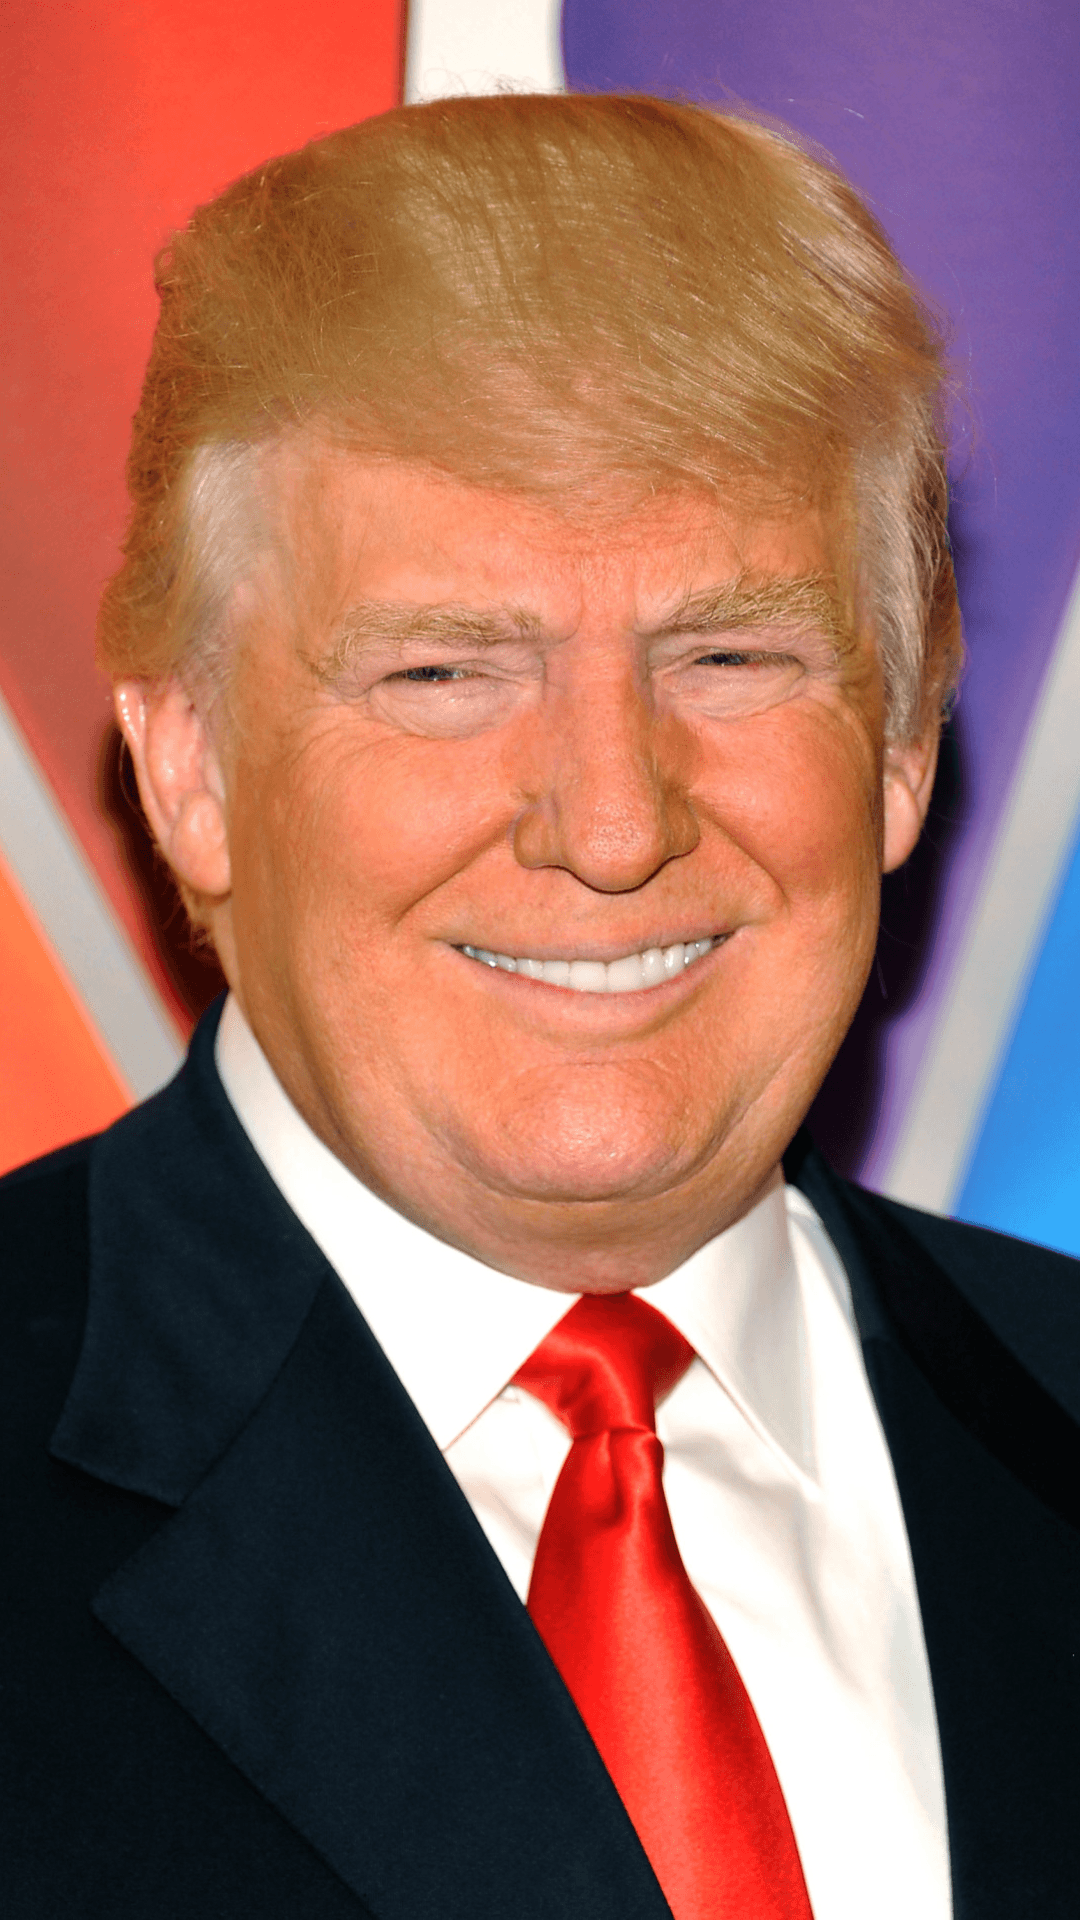 Donald Trump Wallpapers for Iphone 7, Iphone 7 plus, Iphone 6 plus